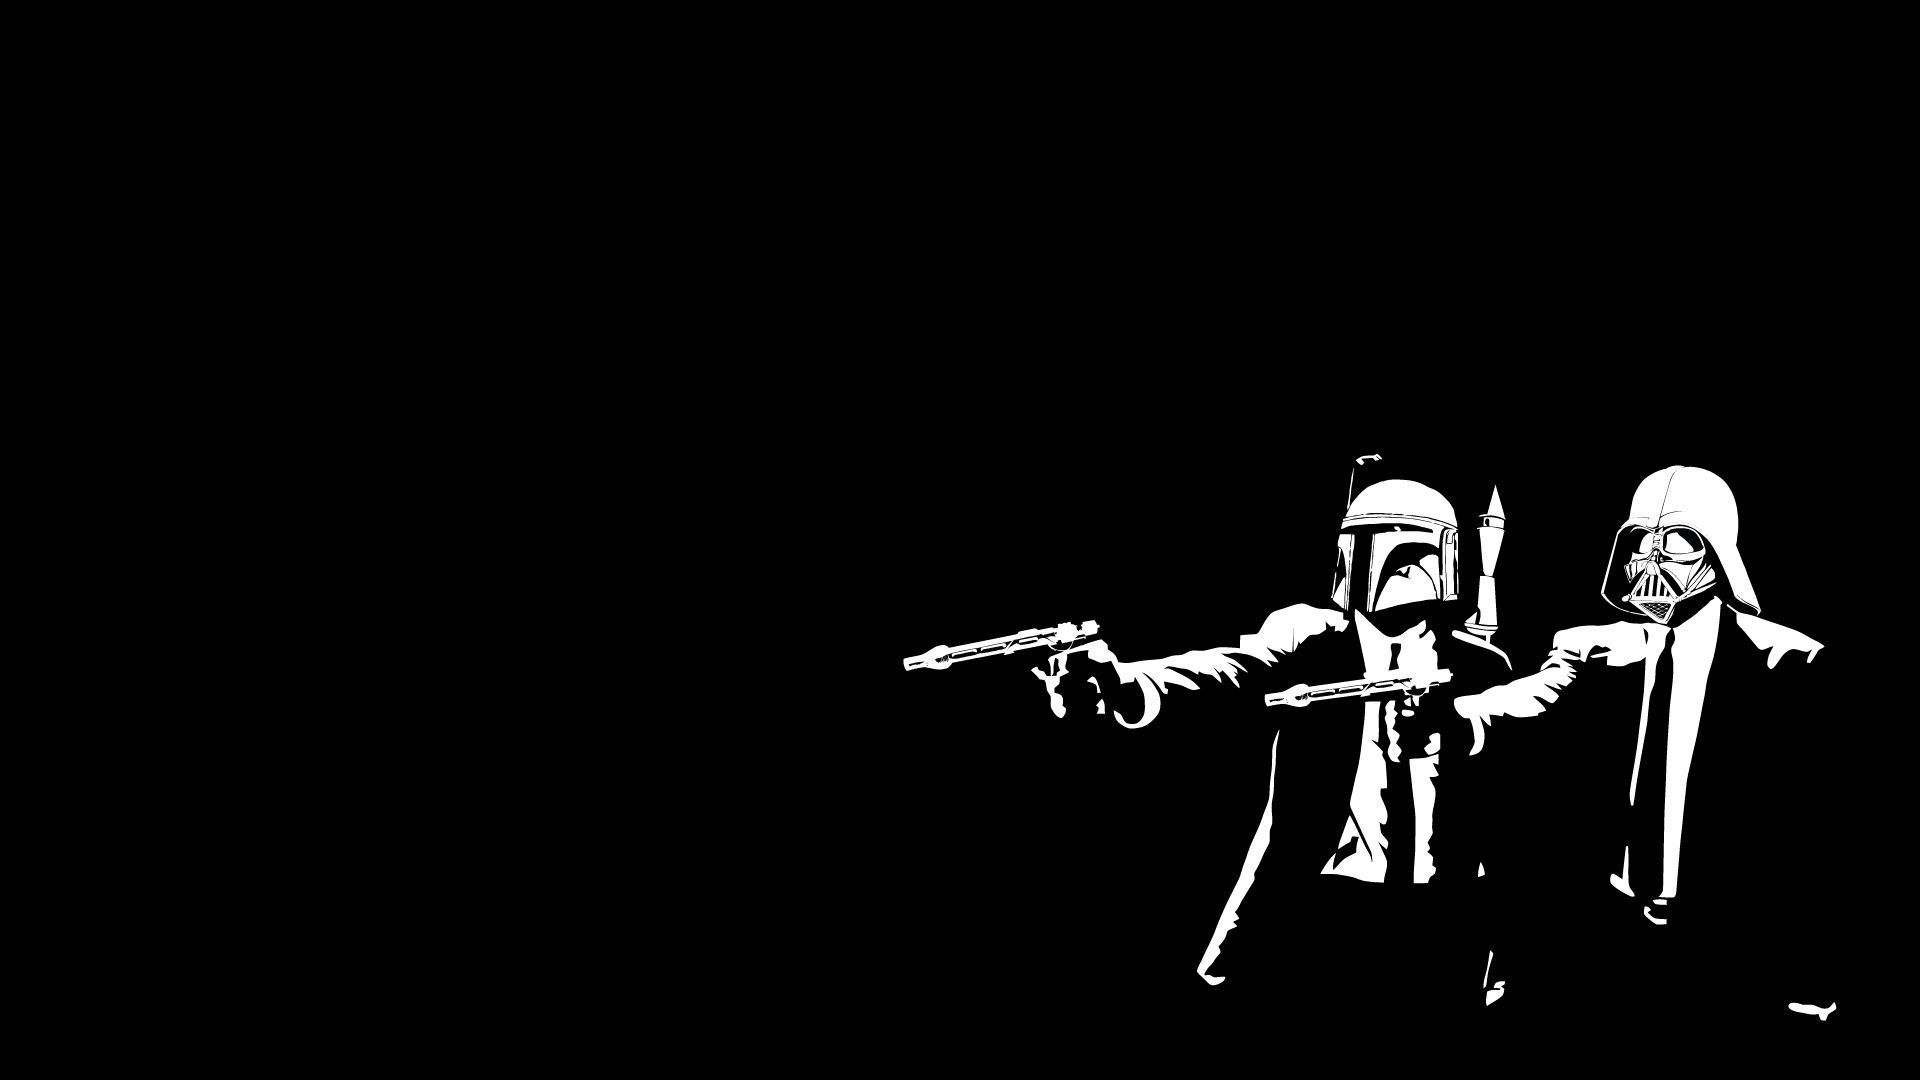 cool star wars backgrounds group (80+)